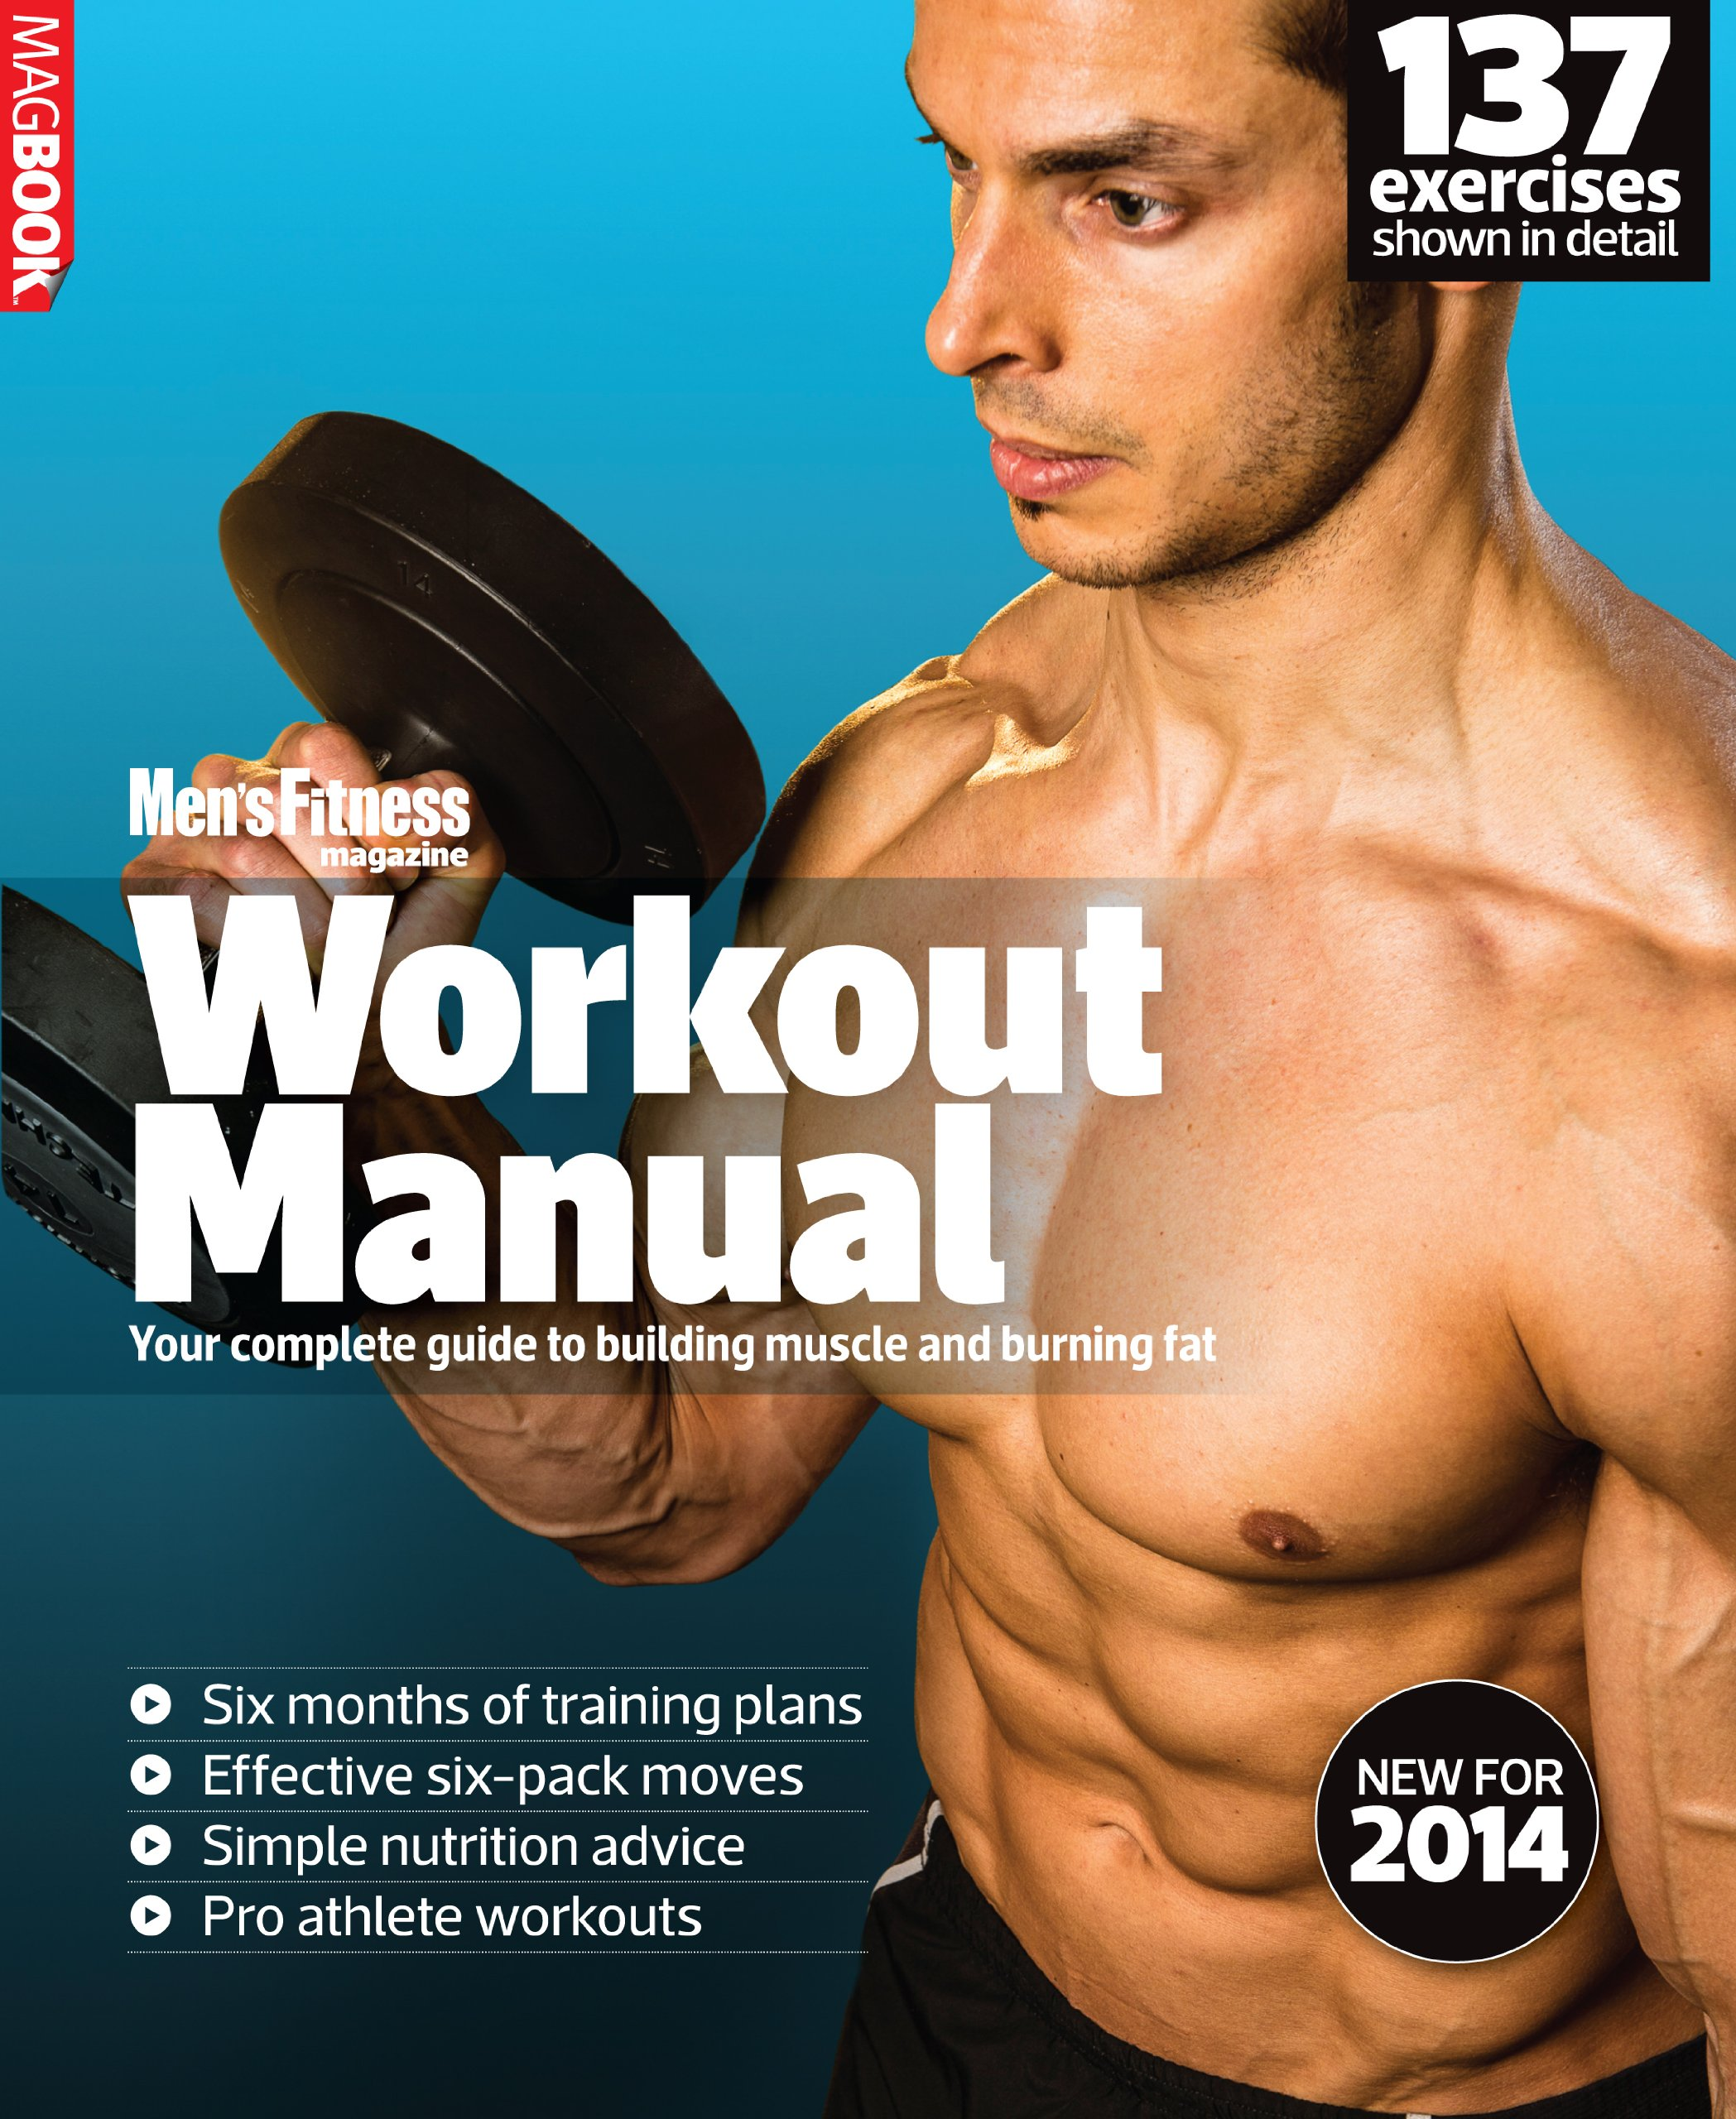 Men's Fitness Workout Manual 2014 MagBook pdf